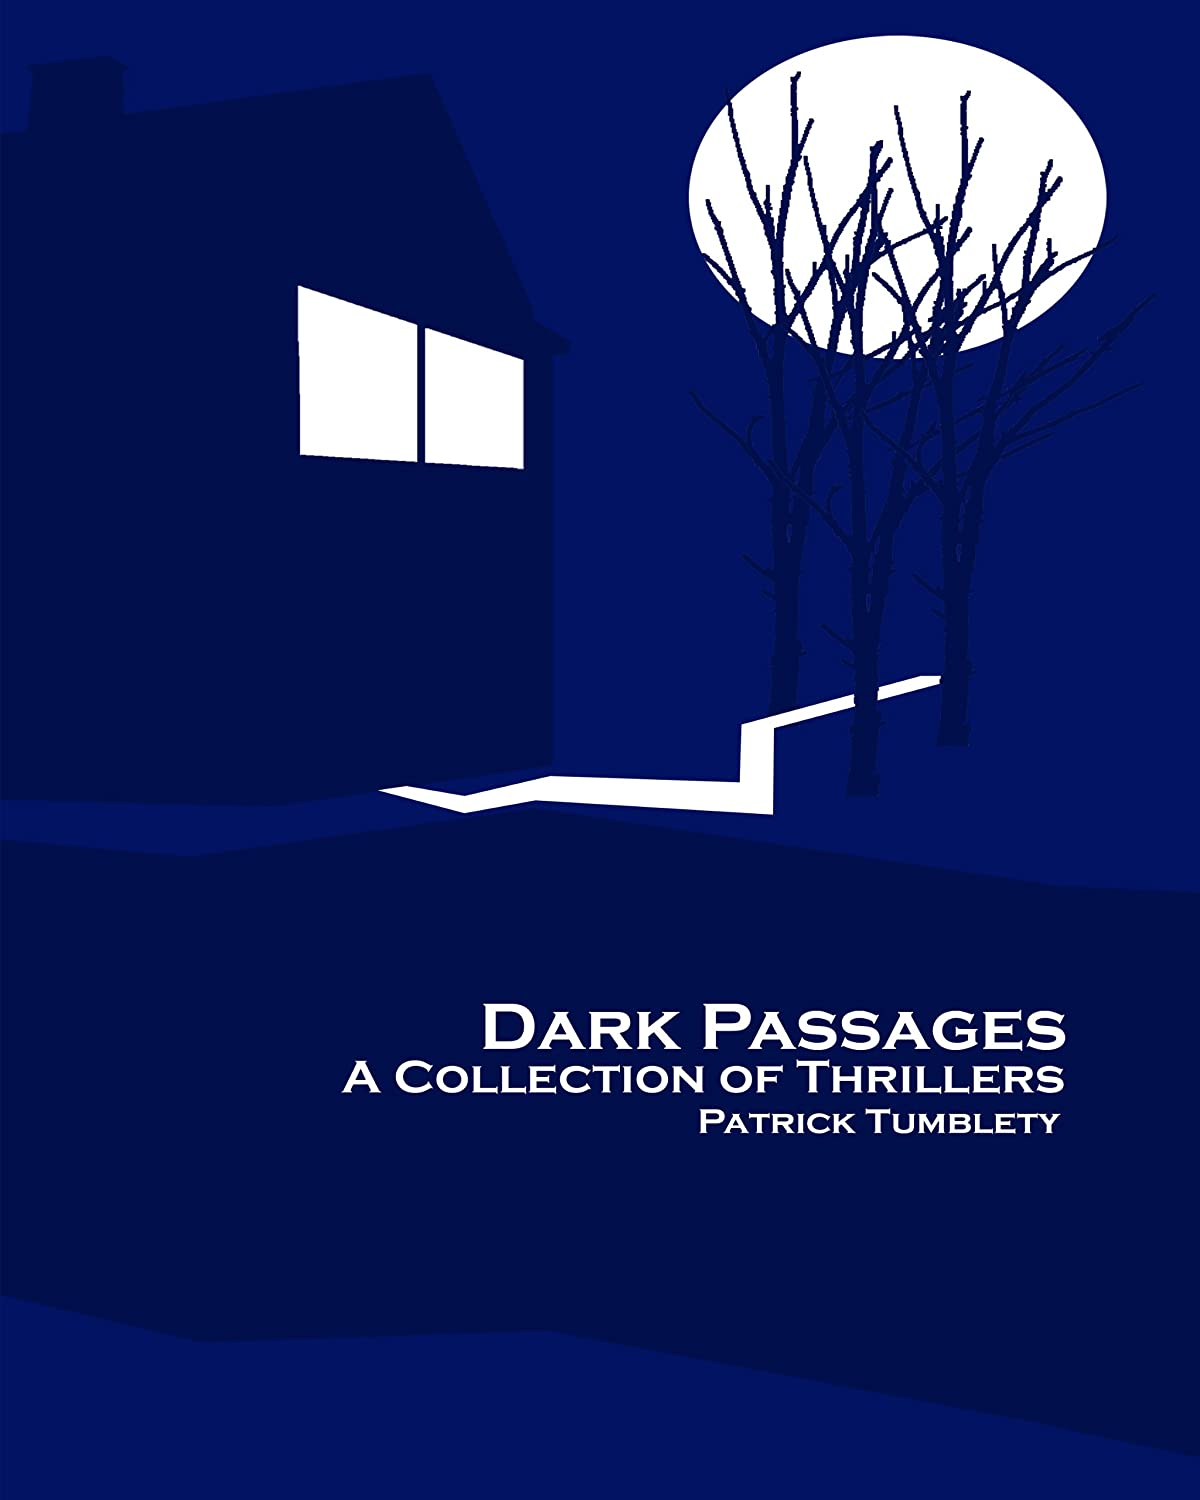 Dark Passages by Patrick Tumblety